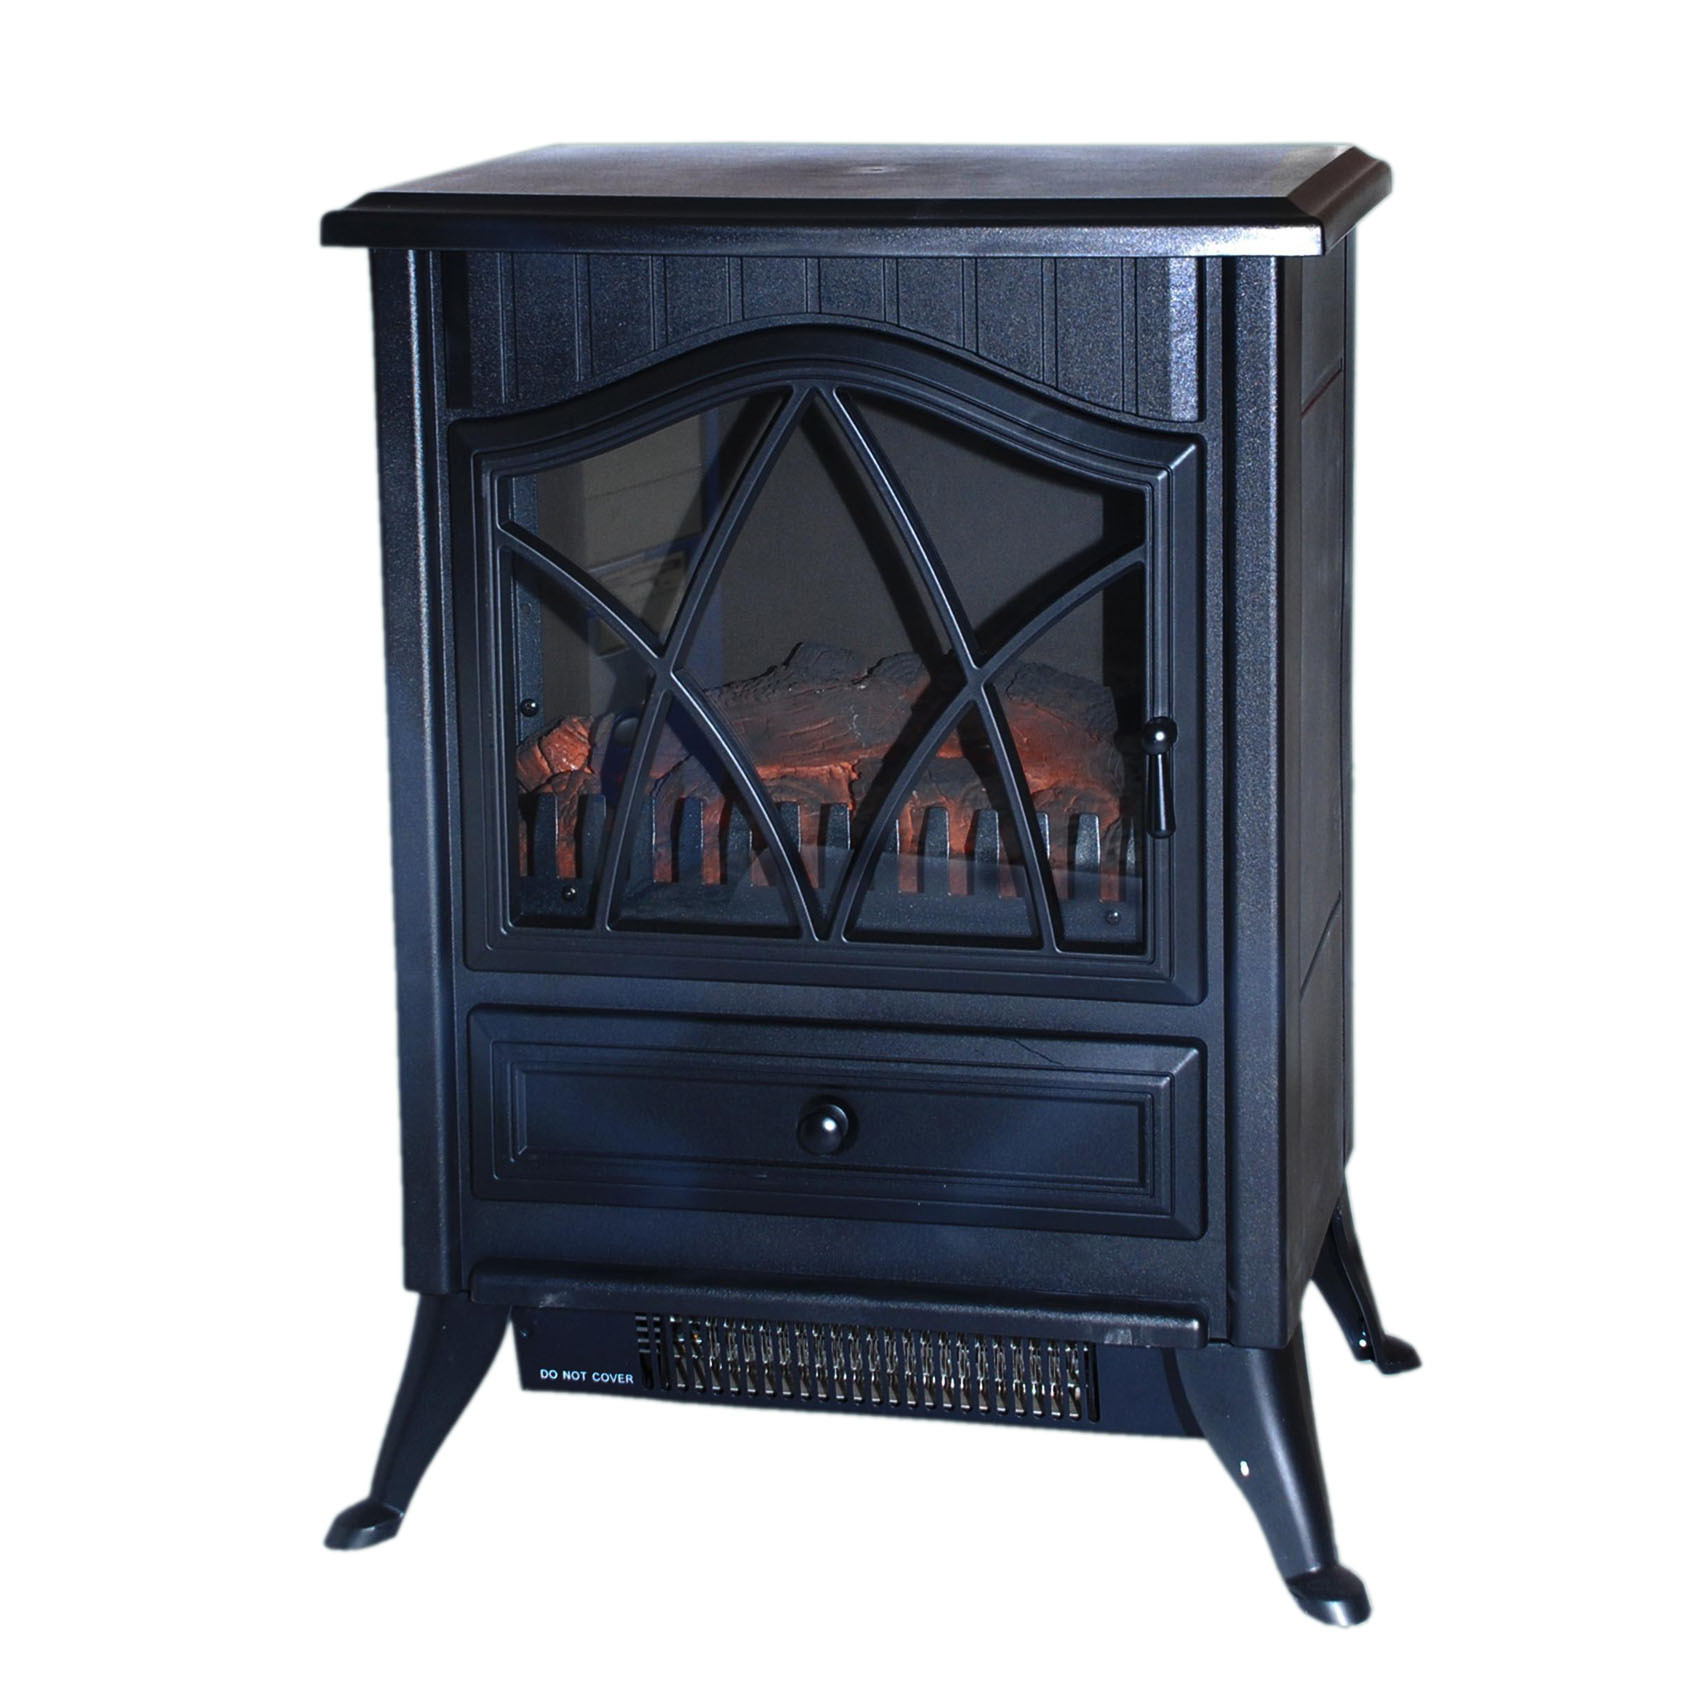 FIRST1 HEATER CHIMNEY FCY-527